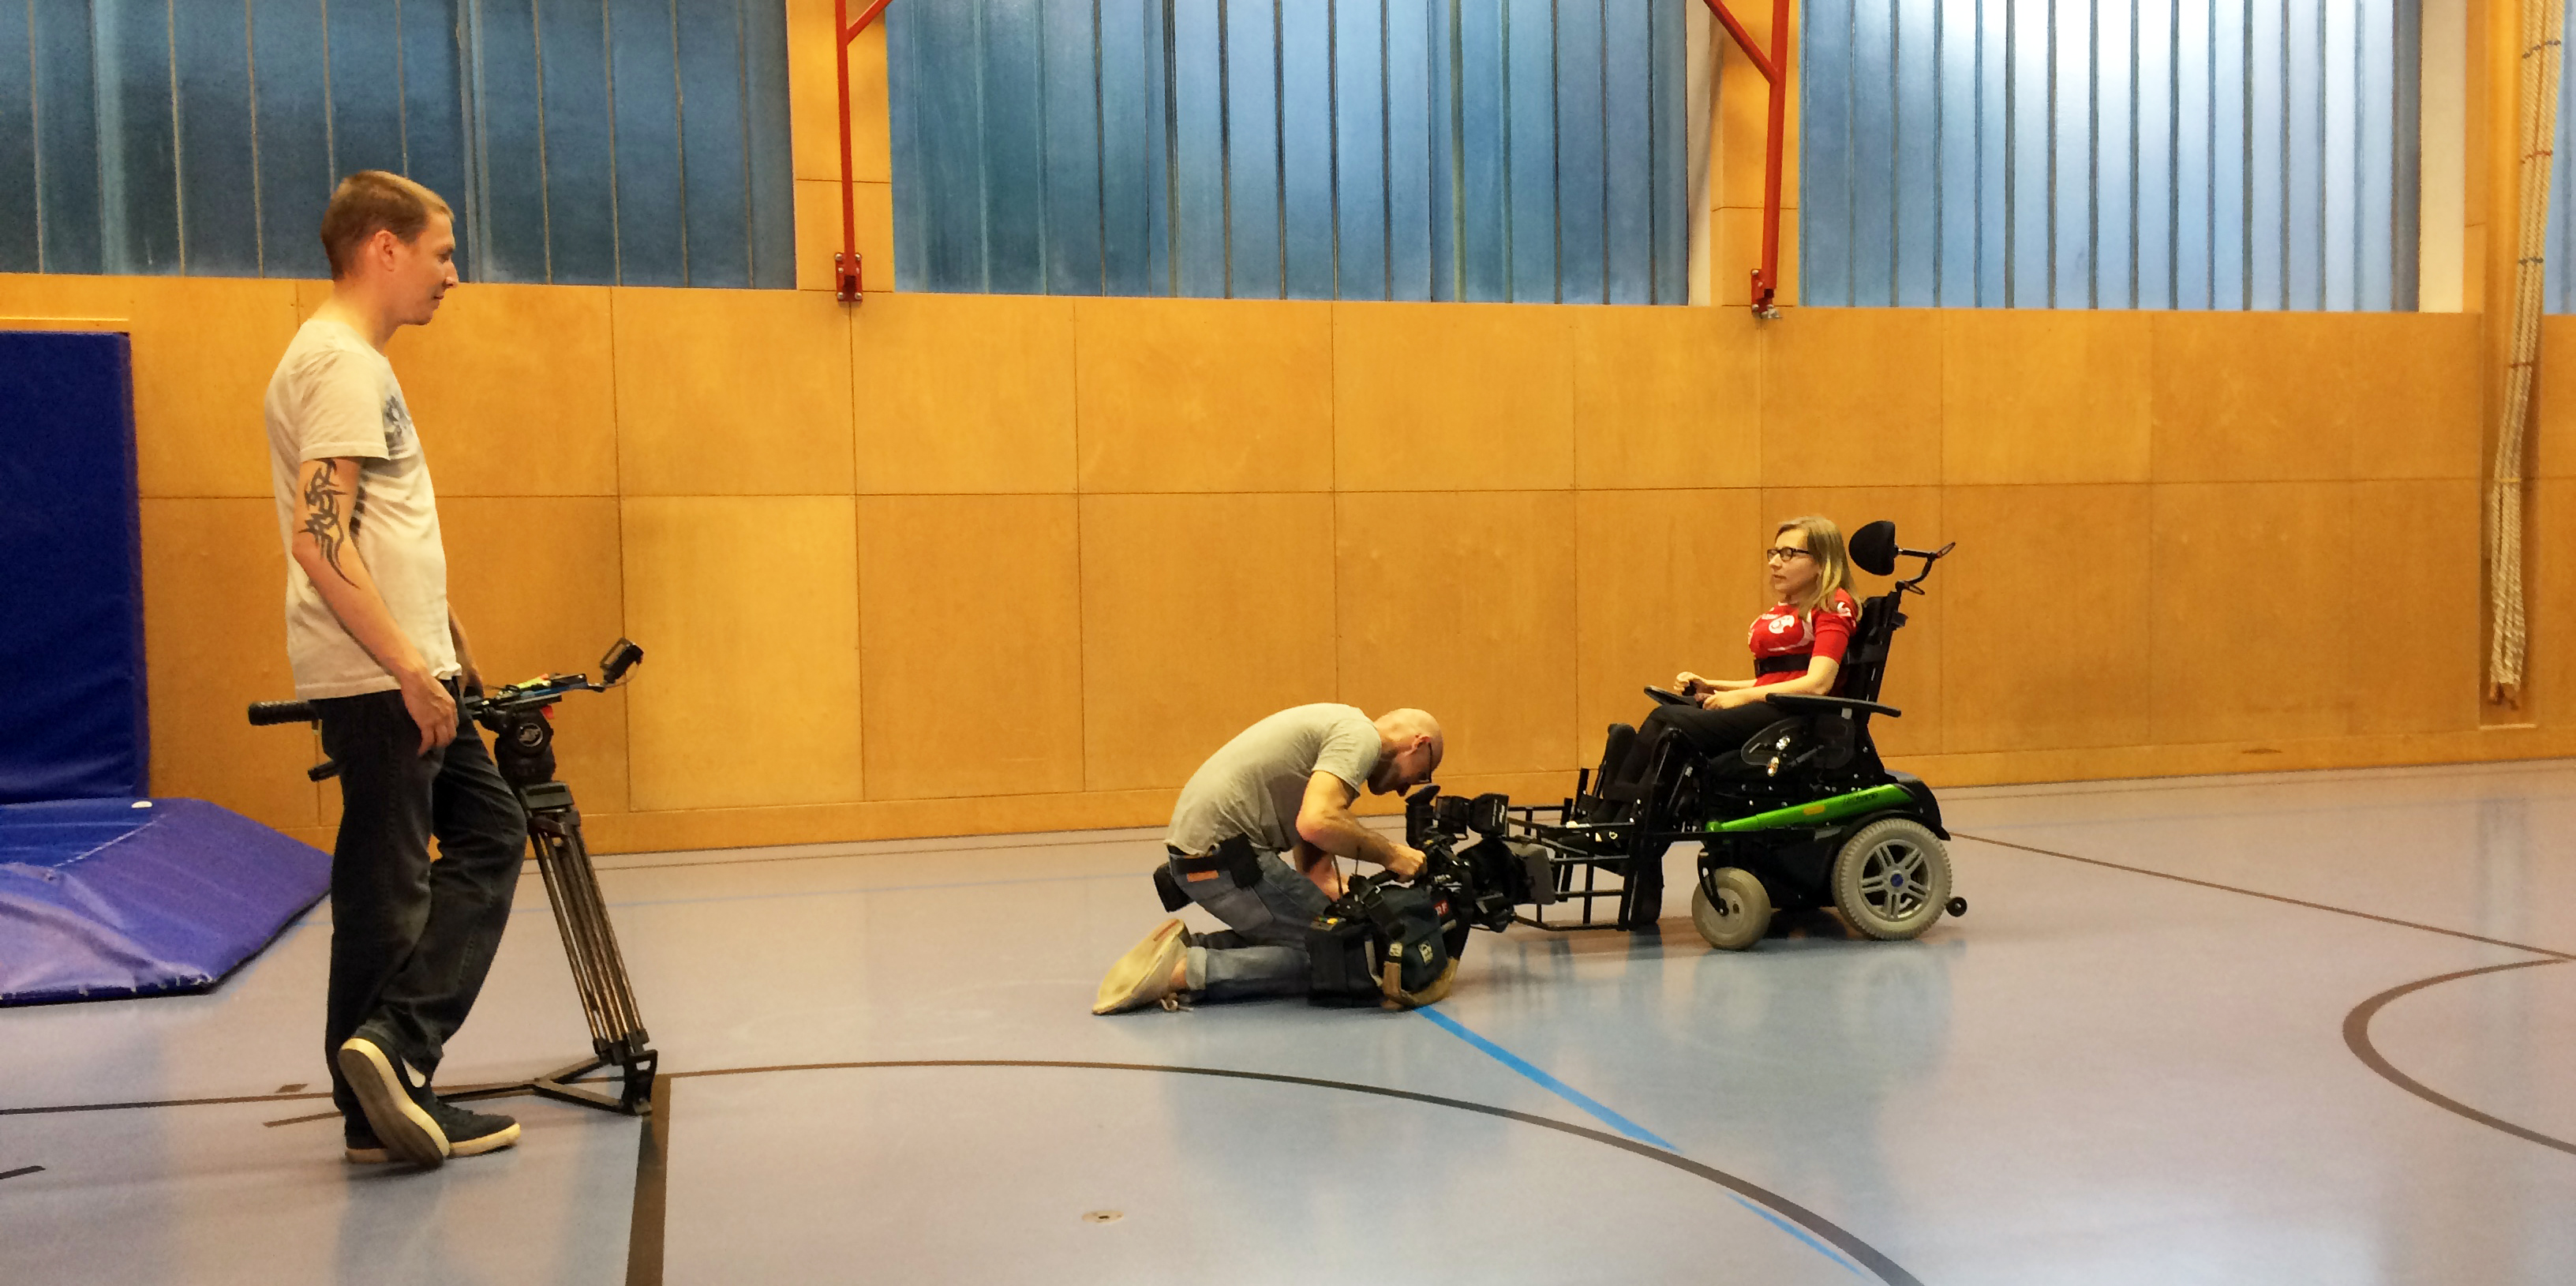 ORF filmte im Training 8. Juni 2015